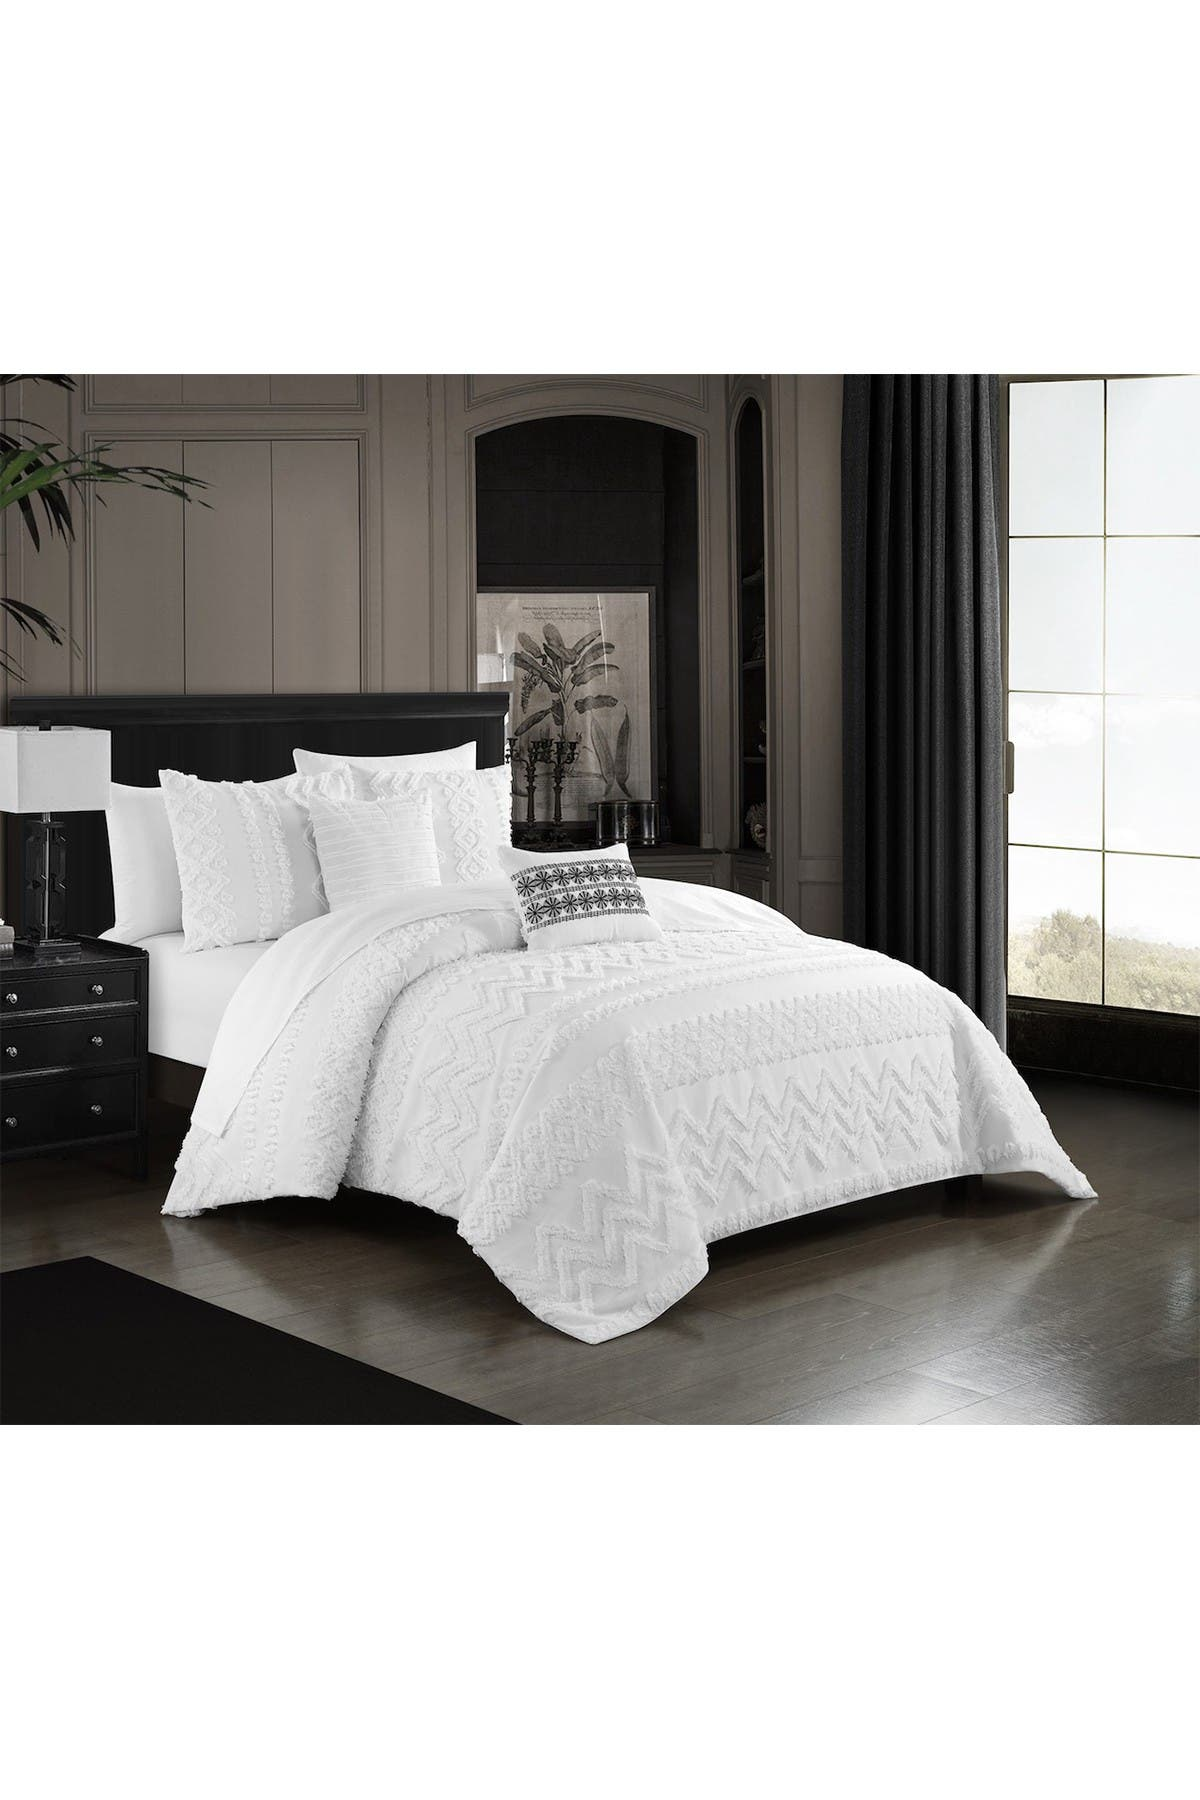 Chic Home Bedding Jenson Jacquard Geometric Design King Comforter Set White 5 Piece Set Hautelook